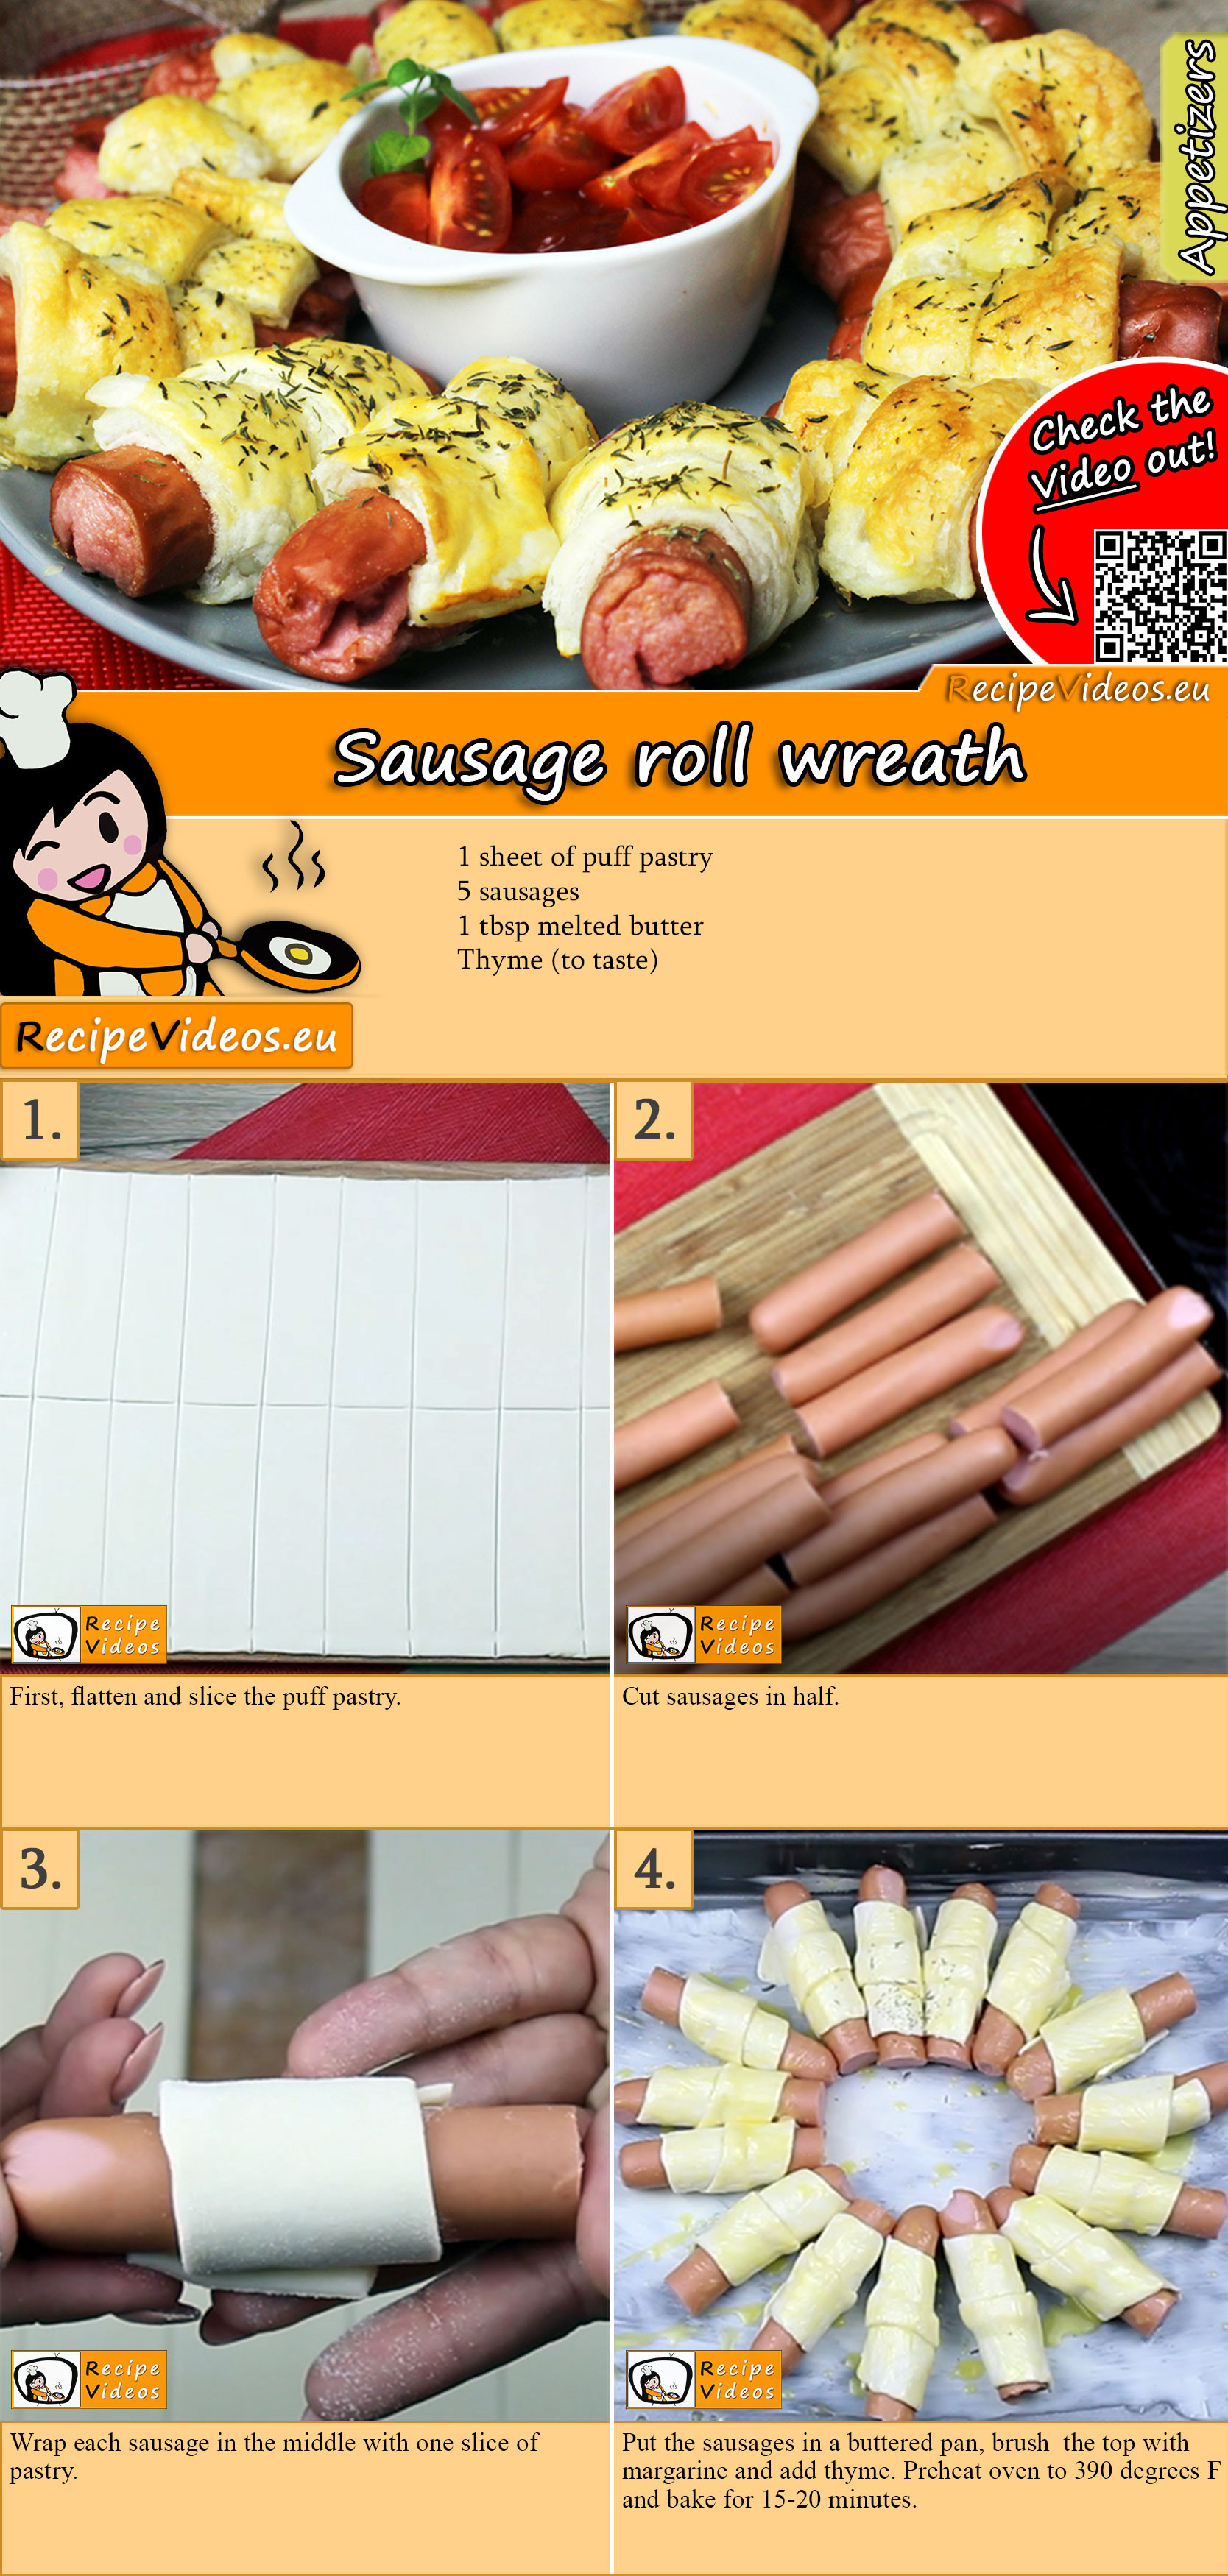 Sausage roll wreath recipe with video